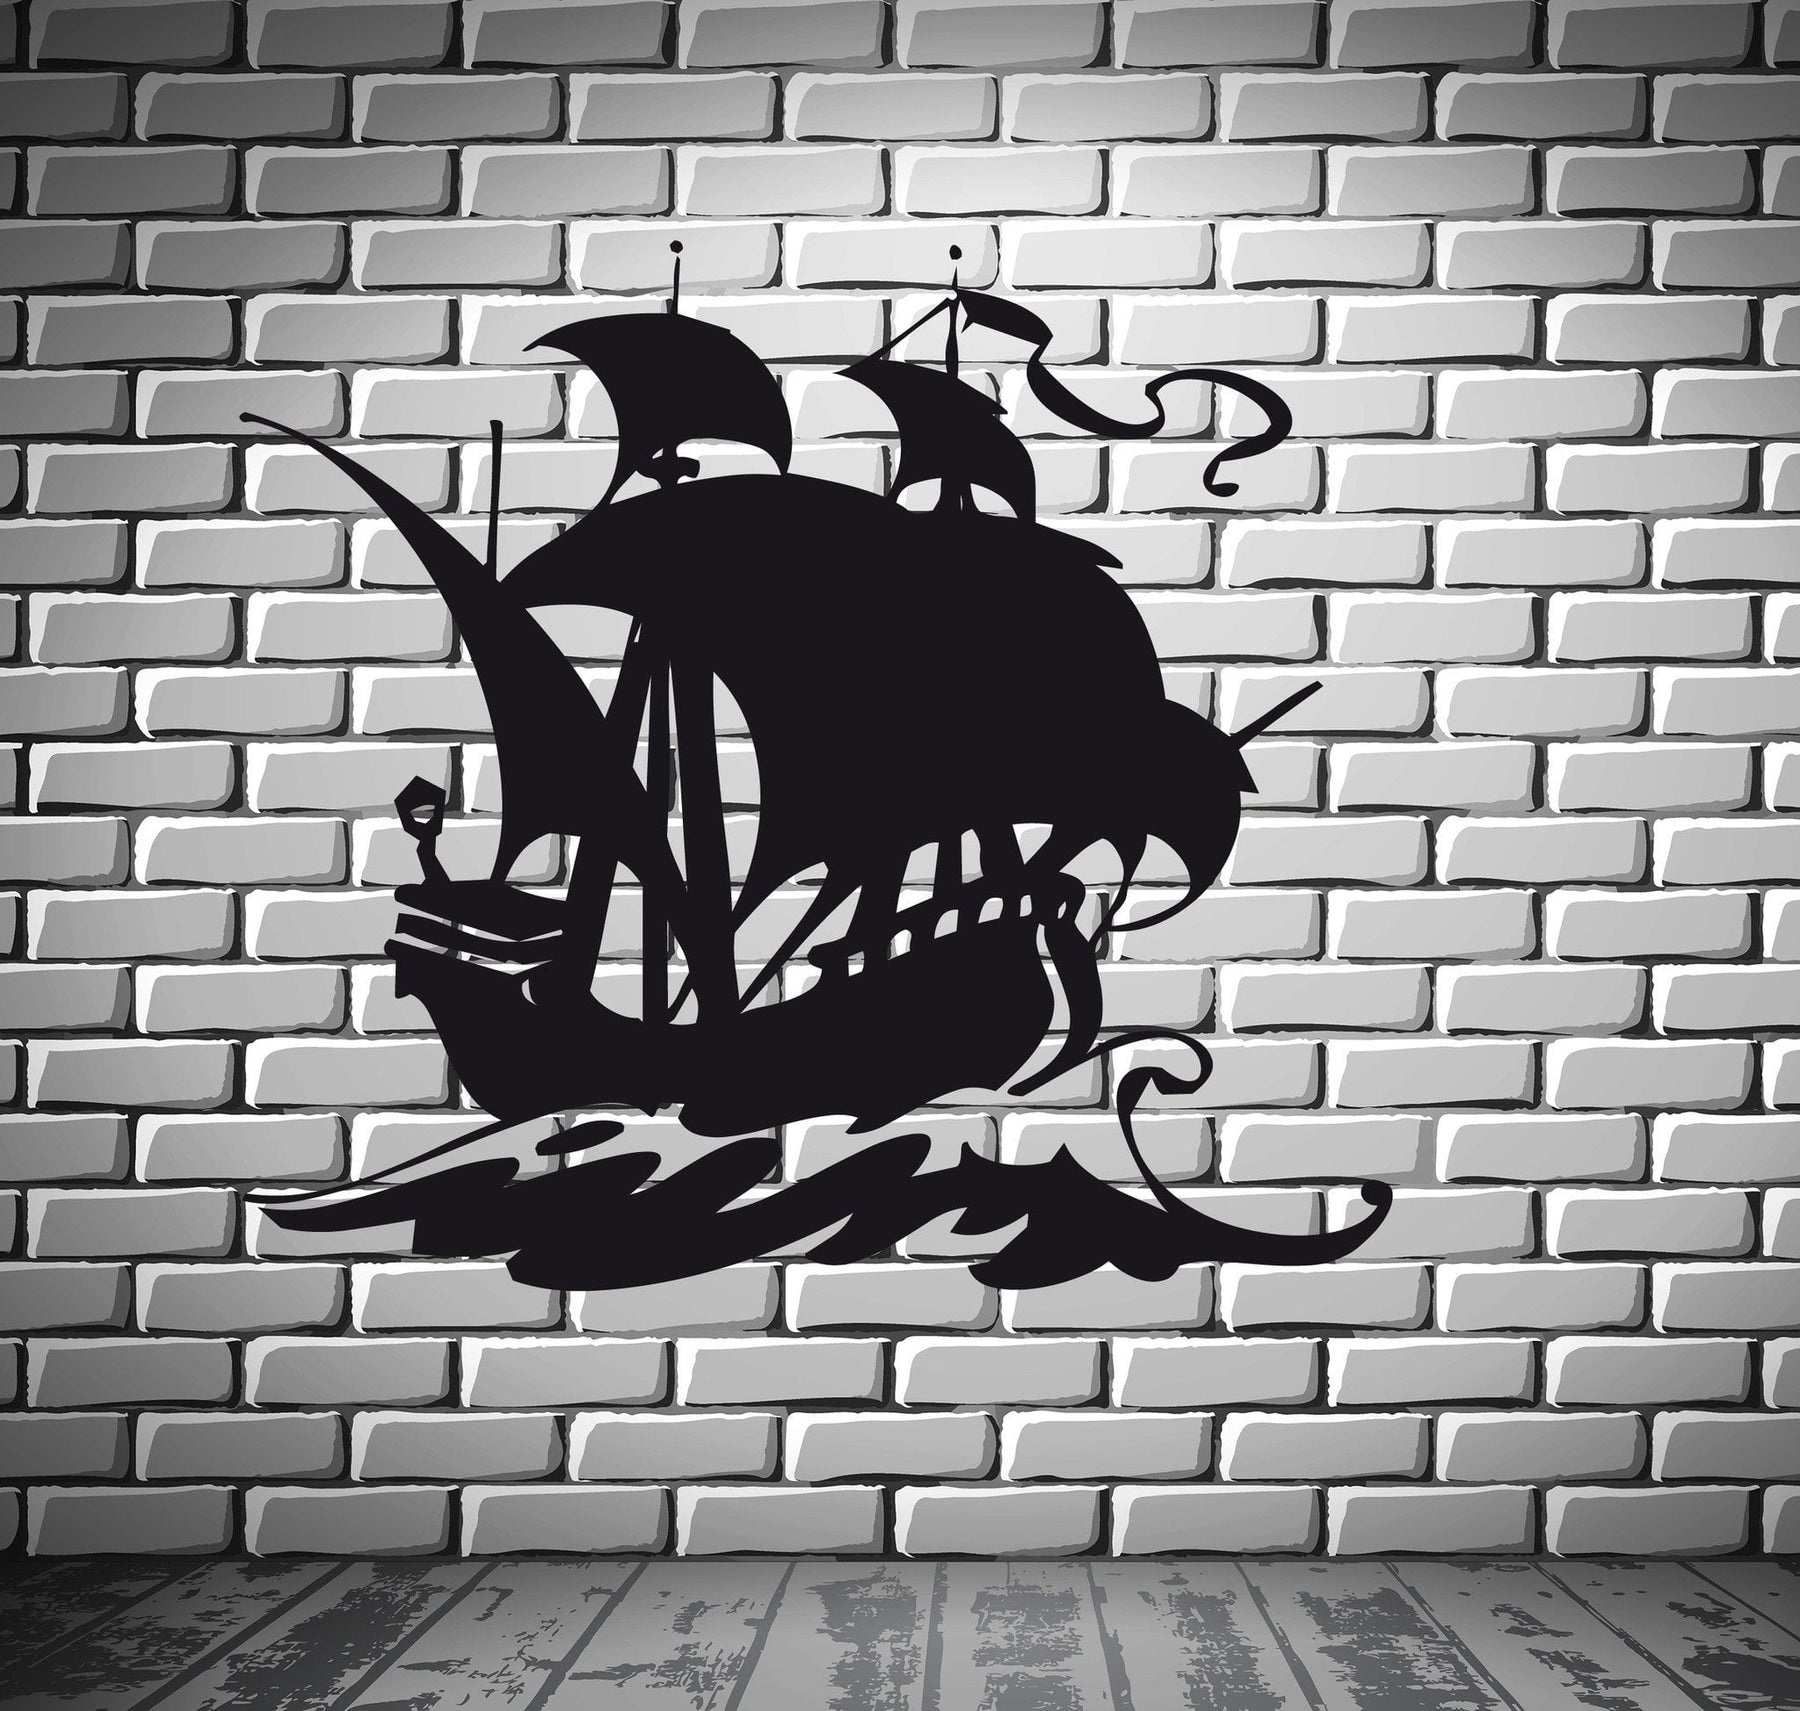 Vinyl Decal Ship Yacht Boat Sea Brig Water Sport Mural Wall Art Decor Sticker (z182)